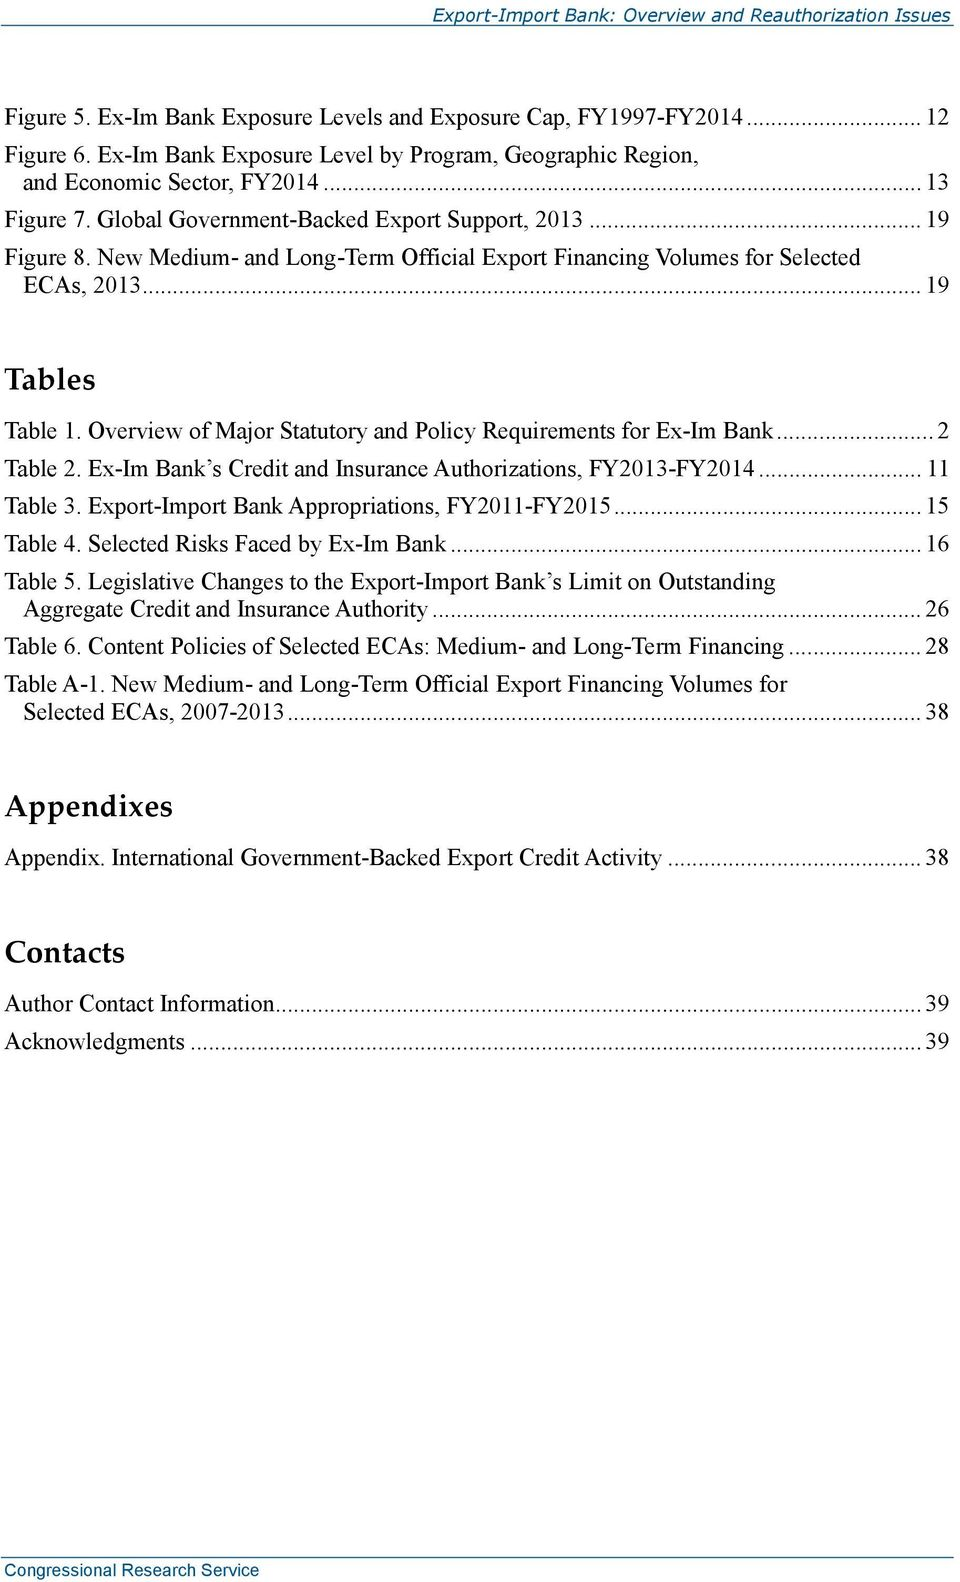 Overview of Major Statutory and Policy Requirements for Ex-Im Bank... 2 Table 2. Ex-Im Bank s Credit and Insurance Authorizations, FY2013-FY2014... 11 Table 3.